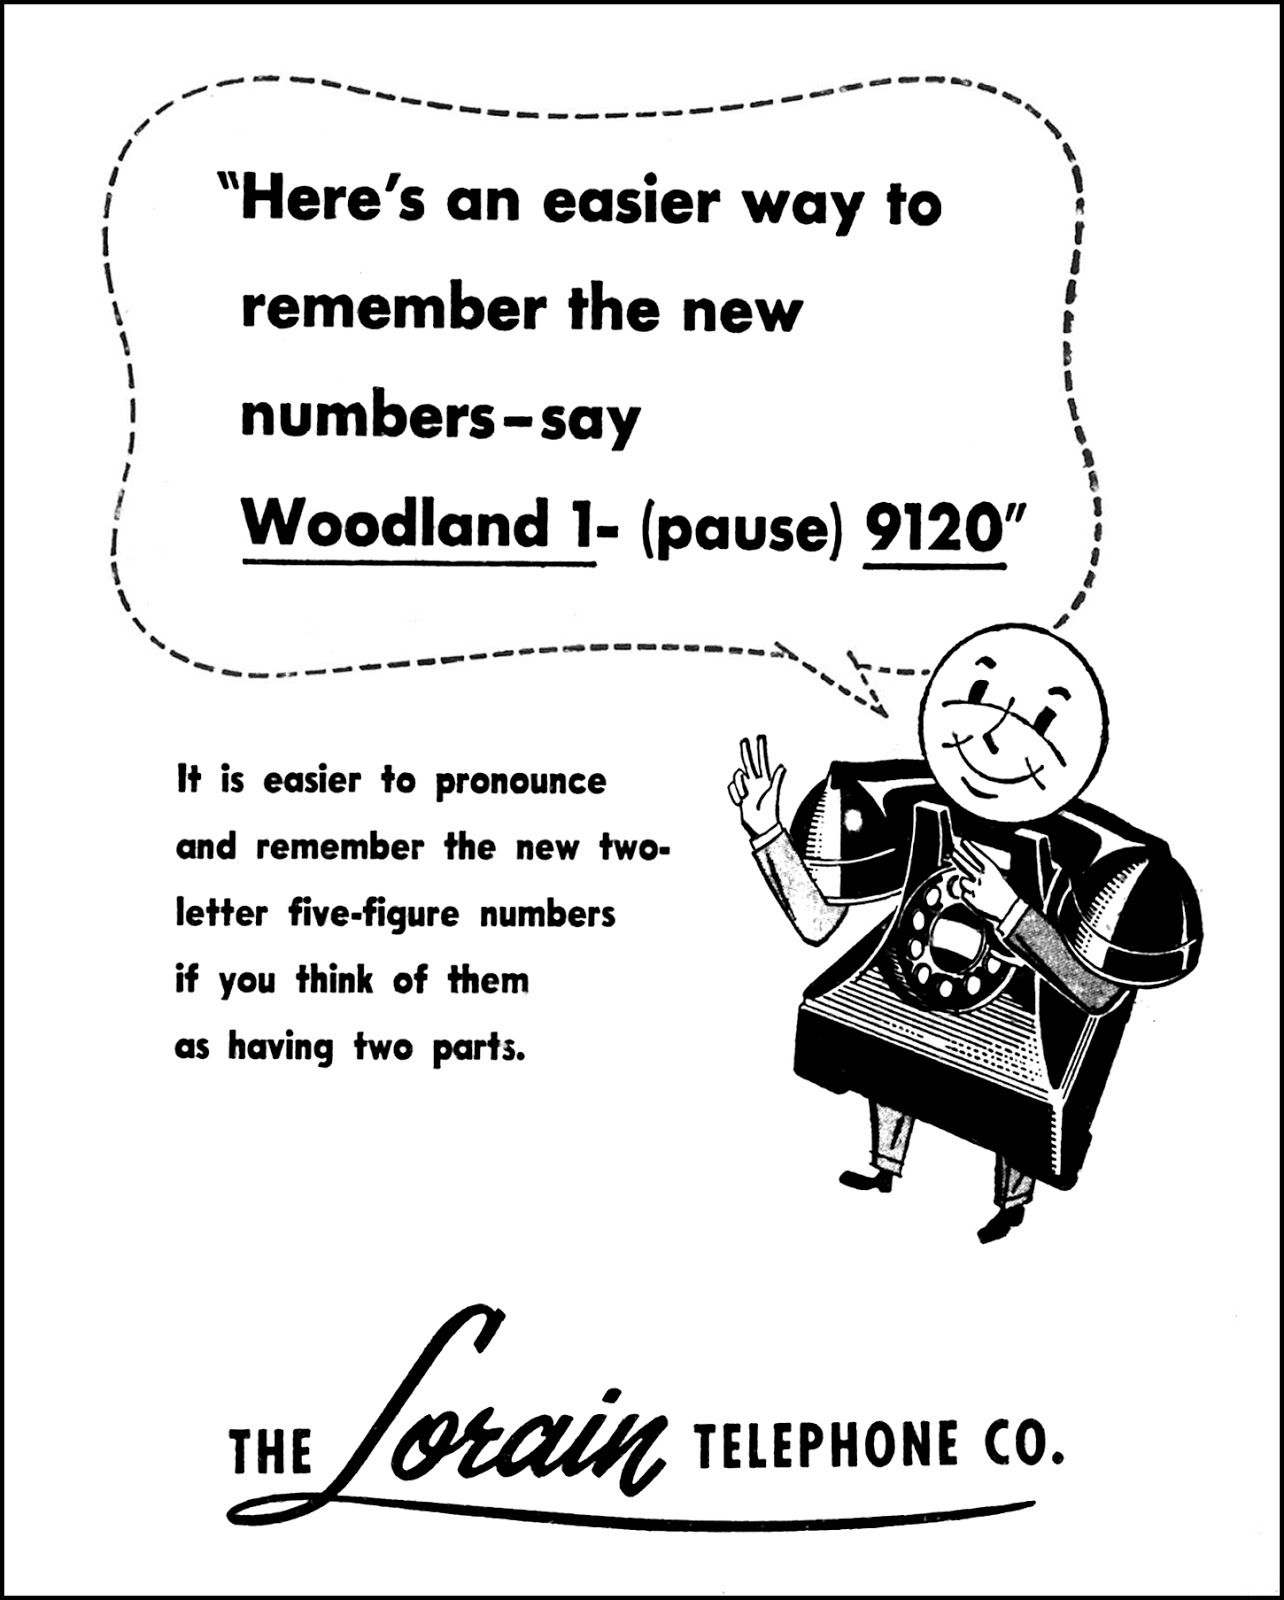 The Lorain Telephone Company - published in the Lorain Journal - Lorian, Ohio U.S.A. - November 13, 1956